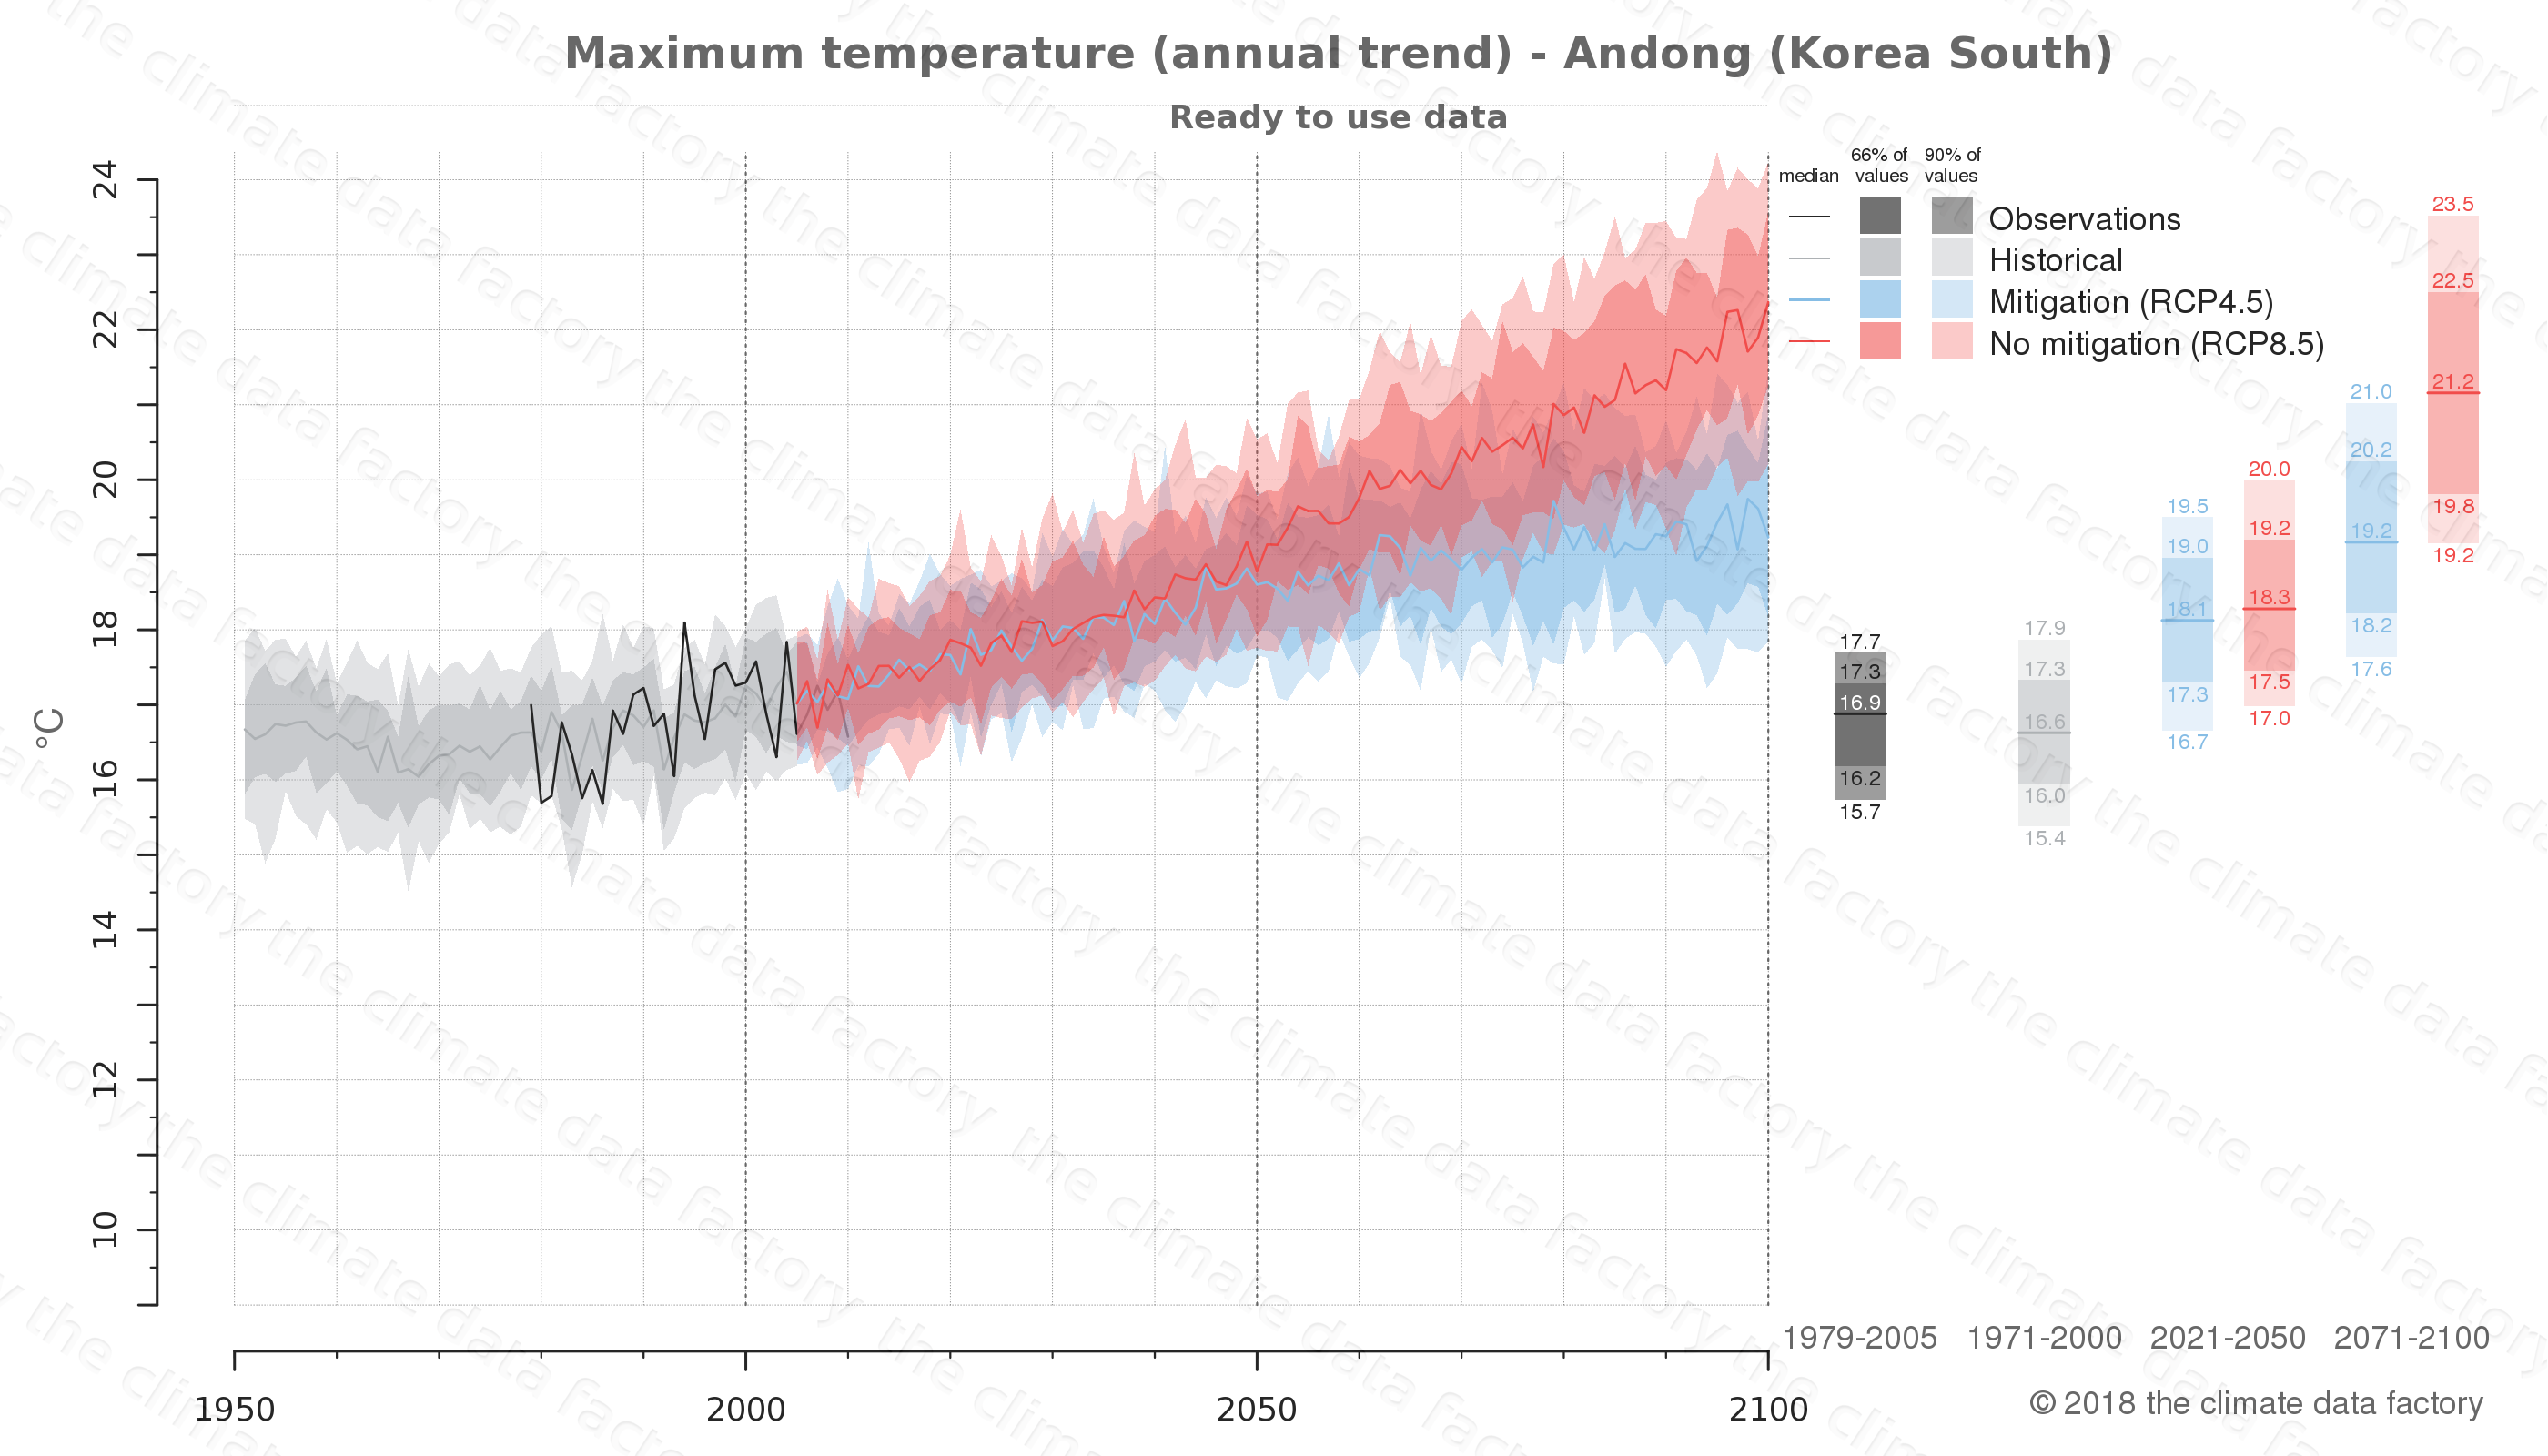 climate change data policy adaptation climate graph city data maximum-temperature andong south korea